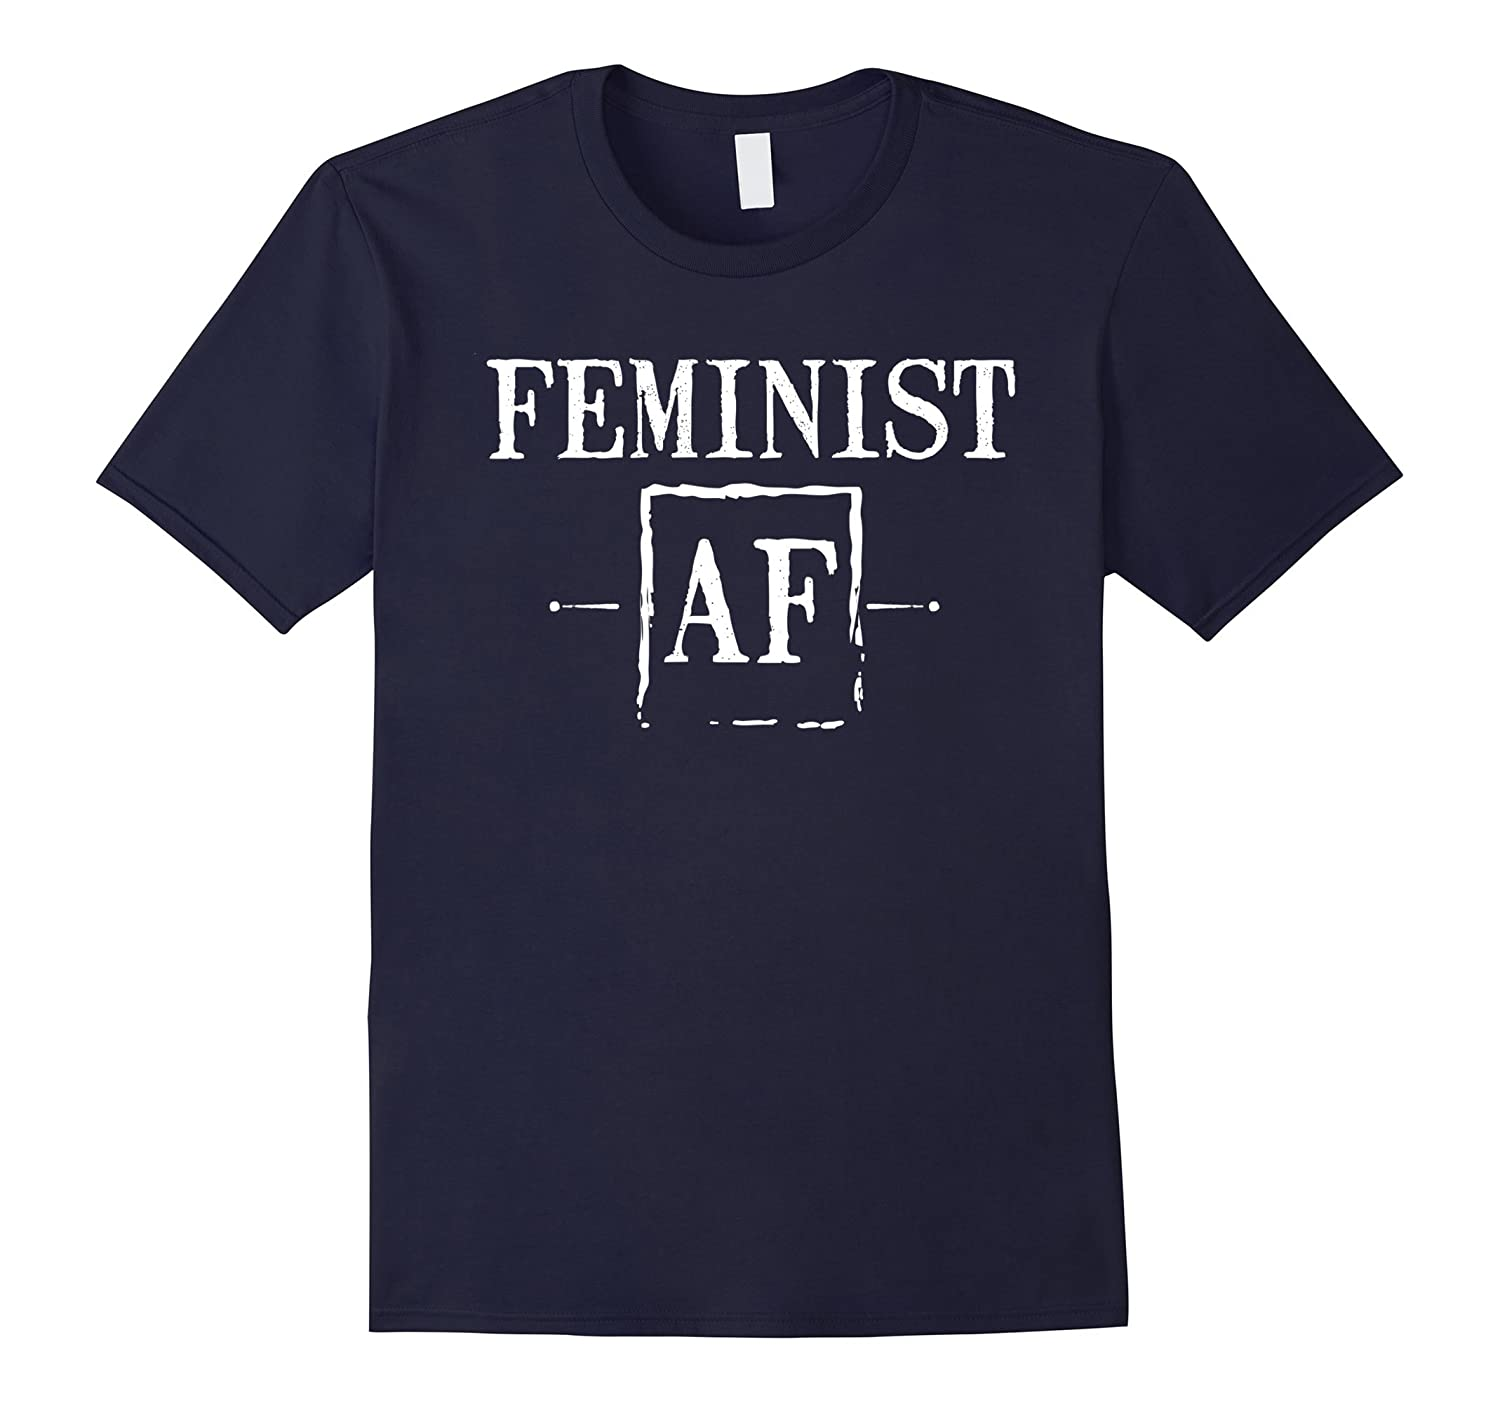 Feminist AF Funny Female Feminism Women's Rights T-Shirt-CL